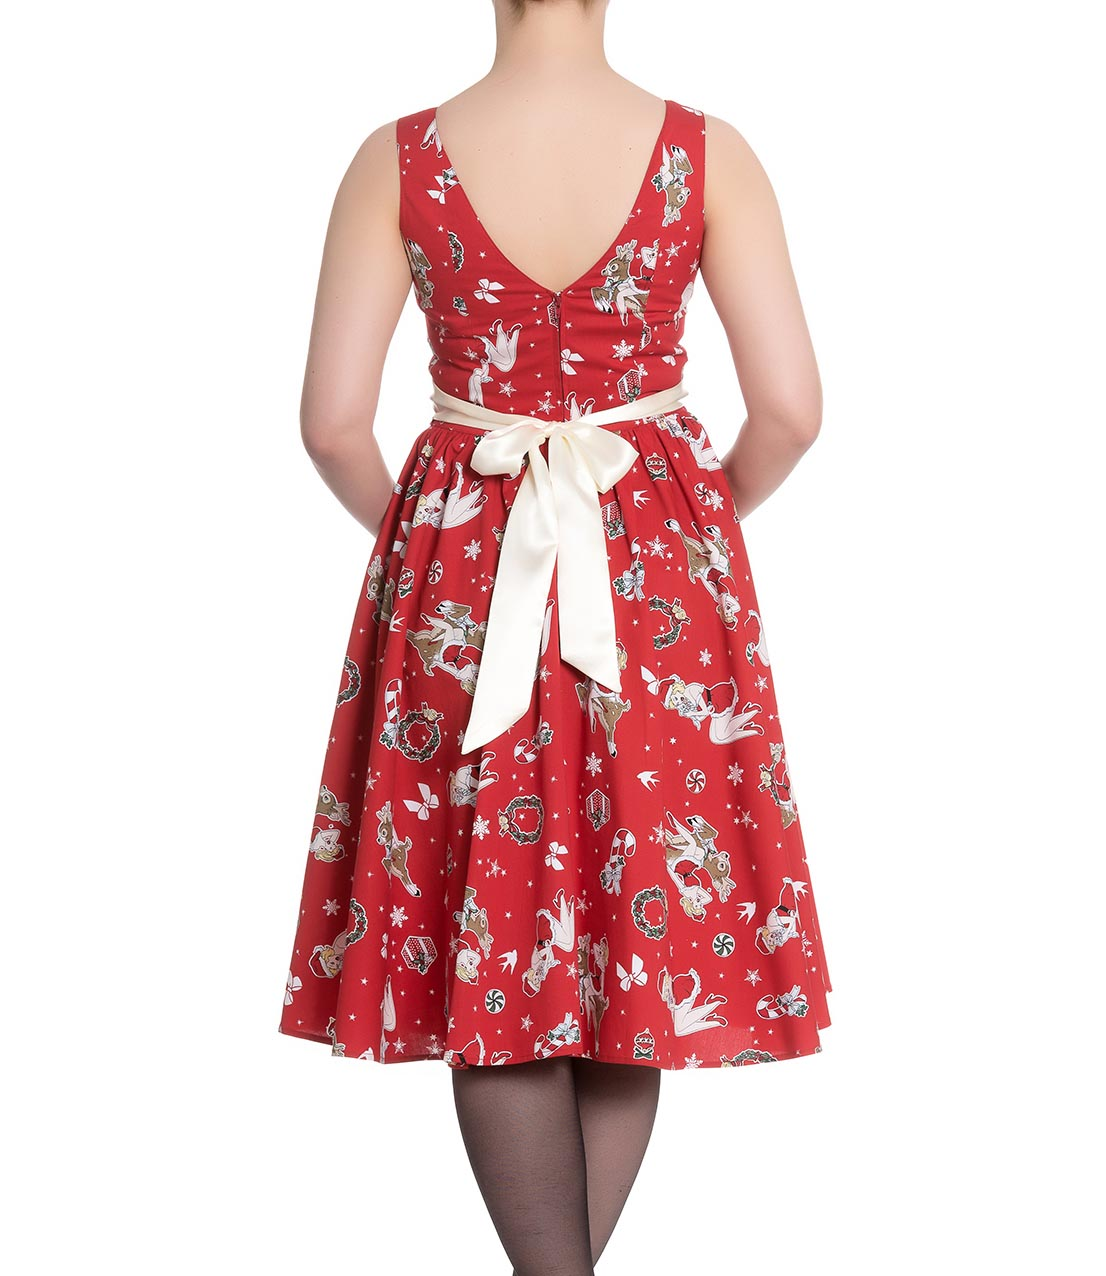 Hell-Bunny-Christmas-Noel-50s-Pin-Up-Rockabilly-Dress-BLITZEN-Red-All-Sizes thumbnail 9